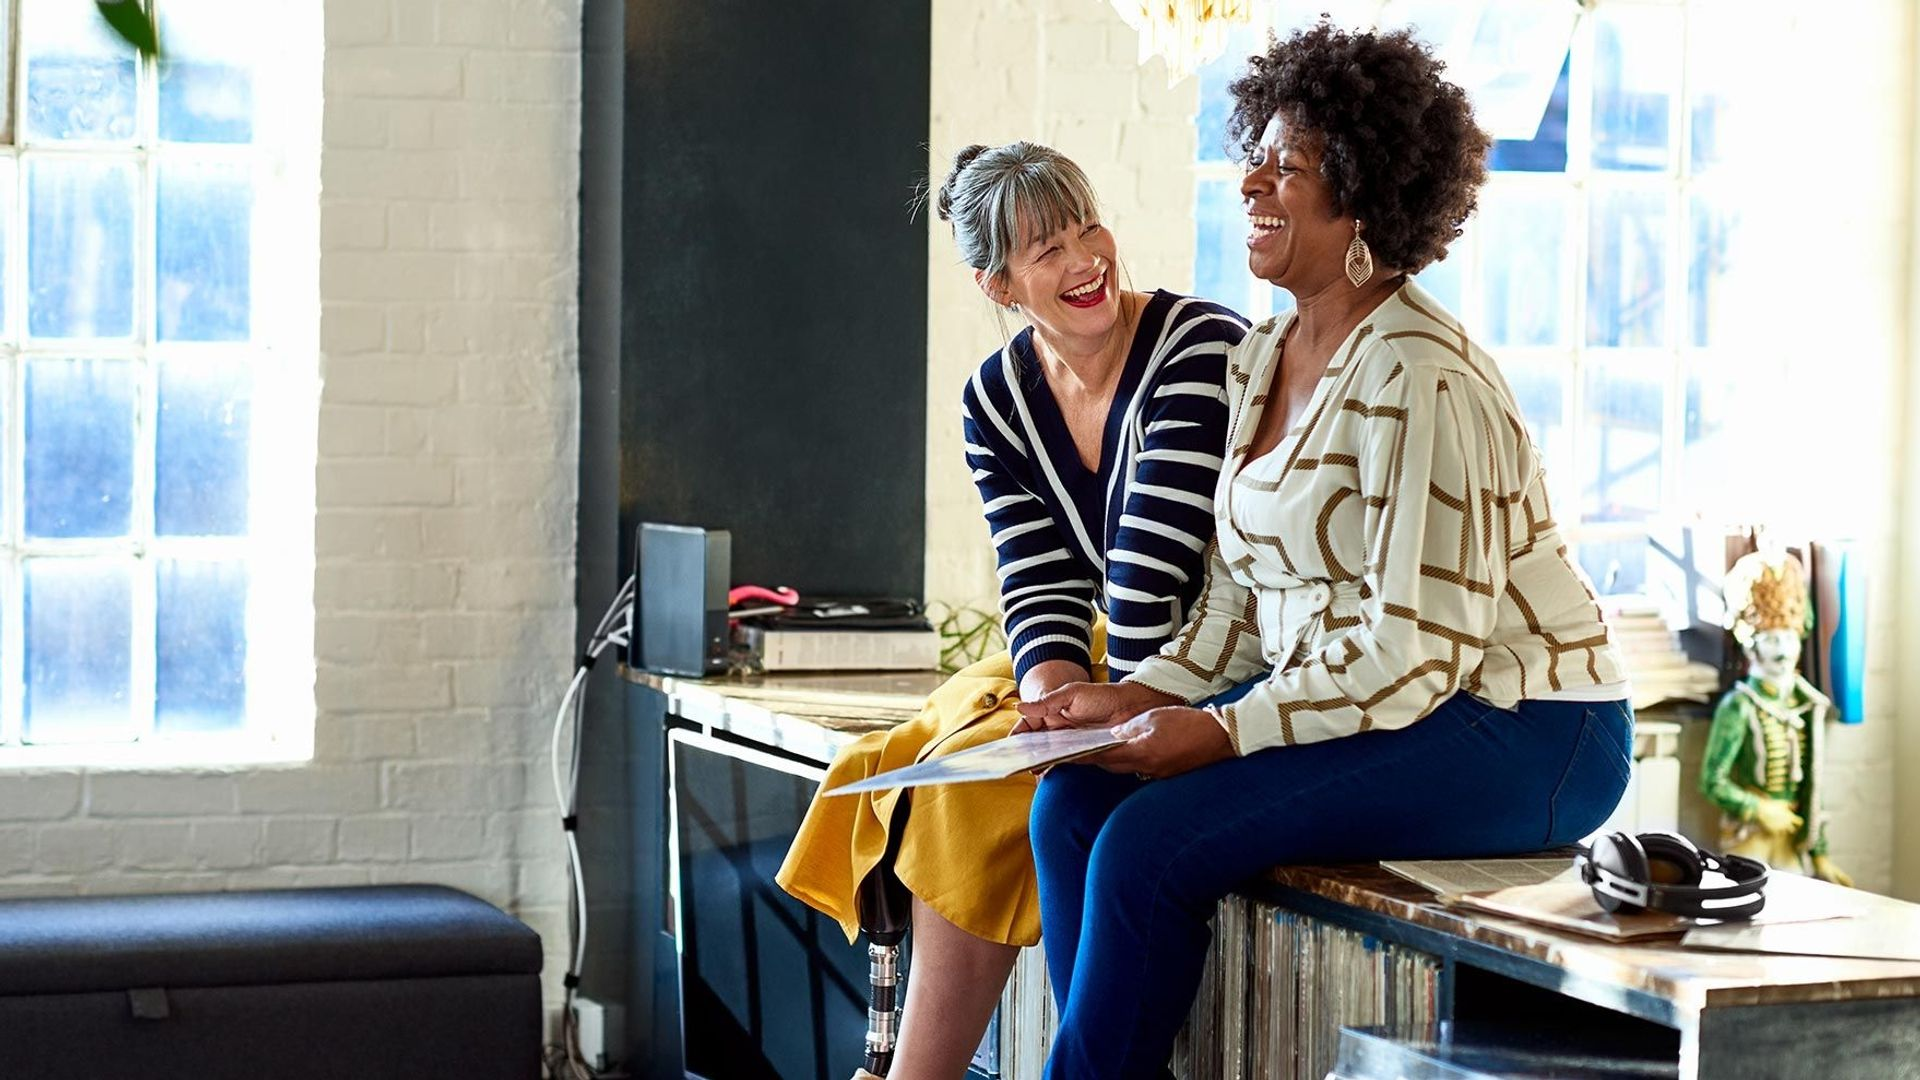 Two women laughing together while sitting on an office desk